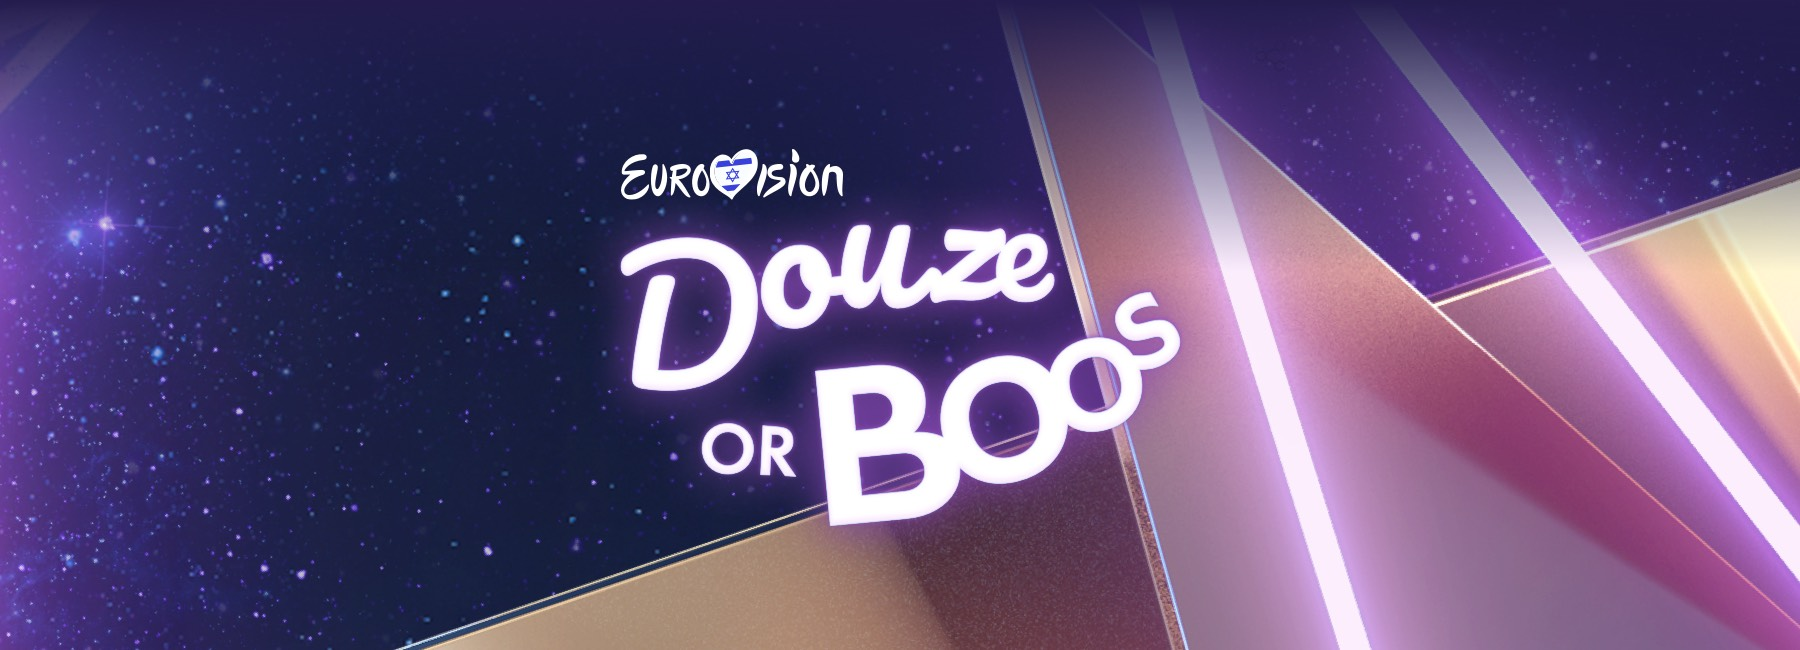 Douze or Boos unique Logo we have created,to distinguish him from all of other Eurovision Digital products graphic language.